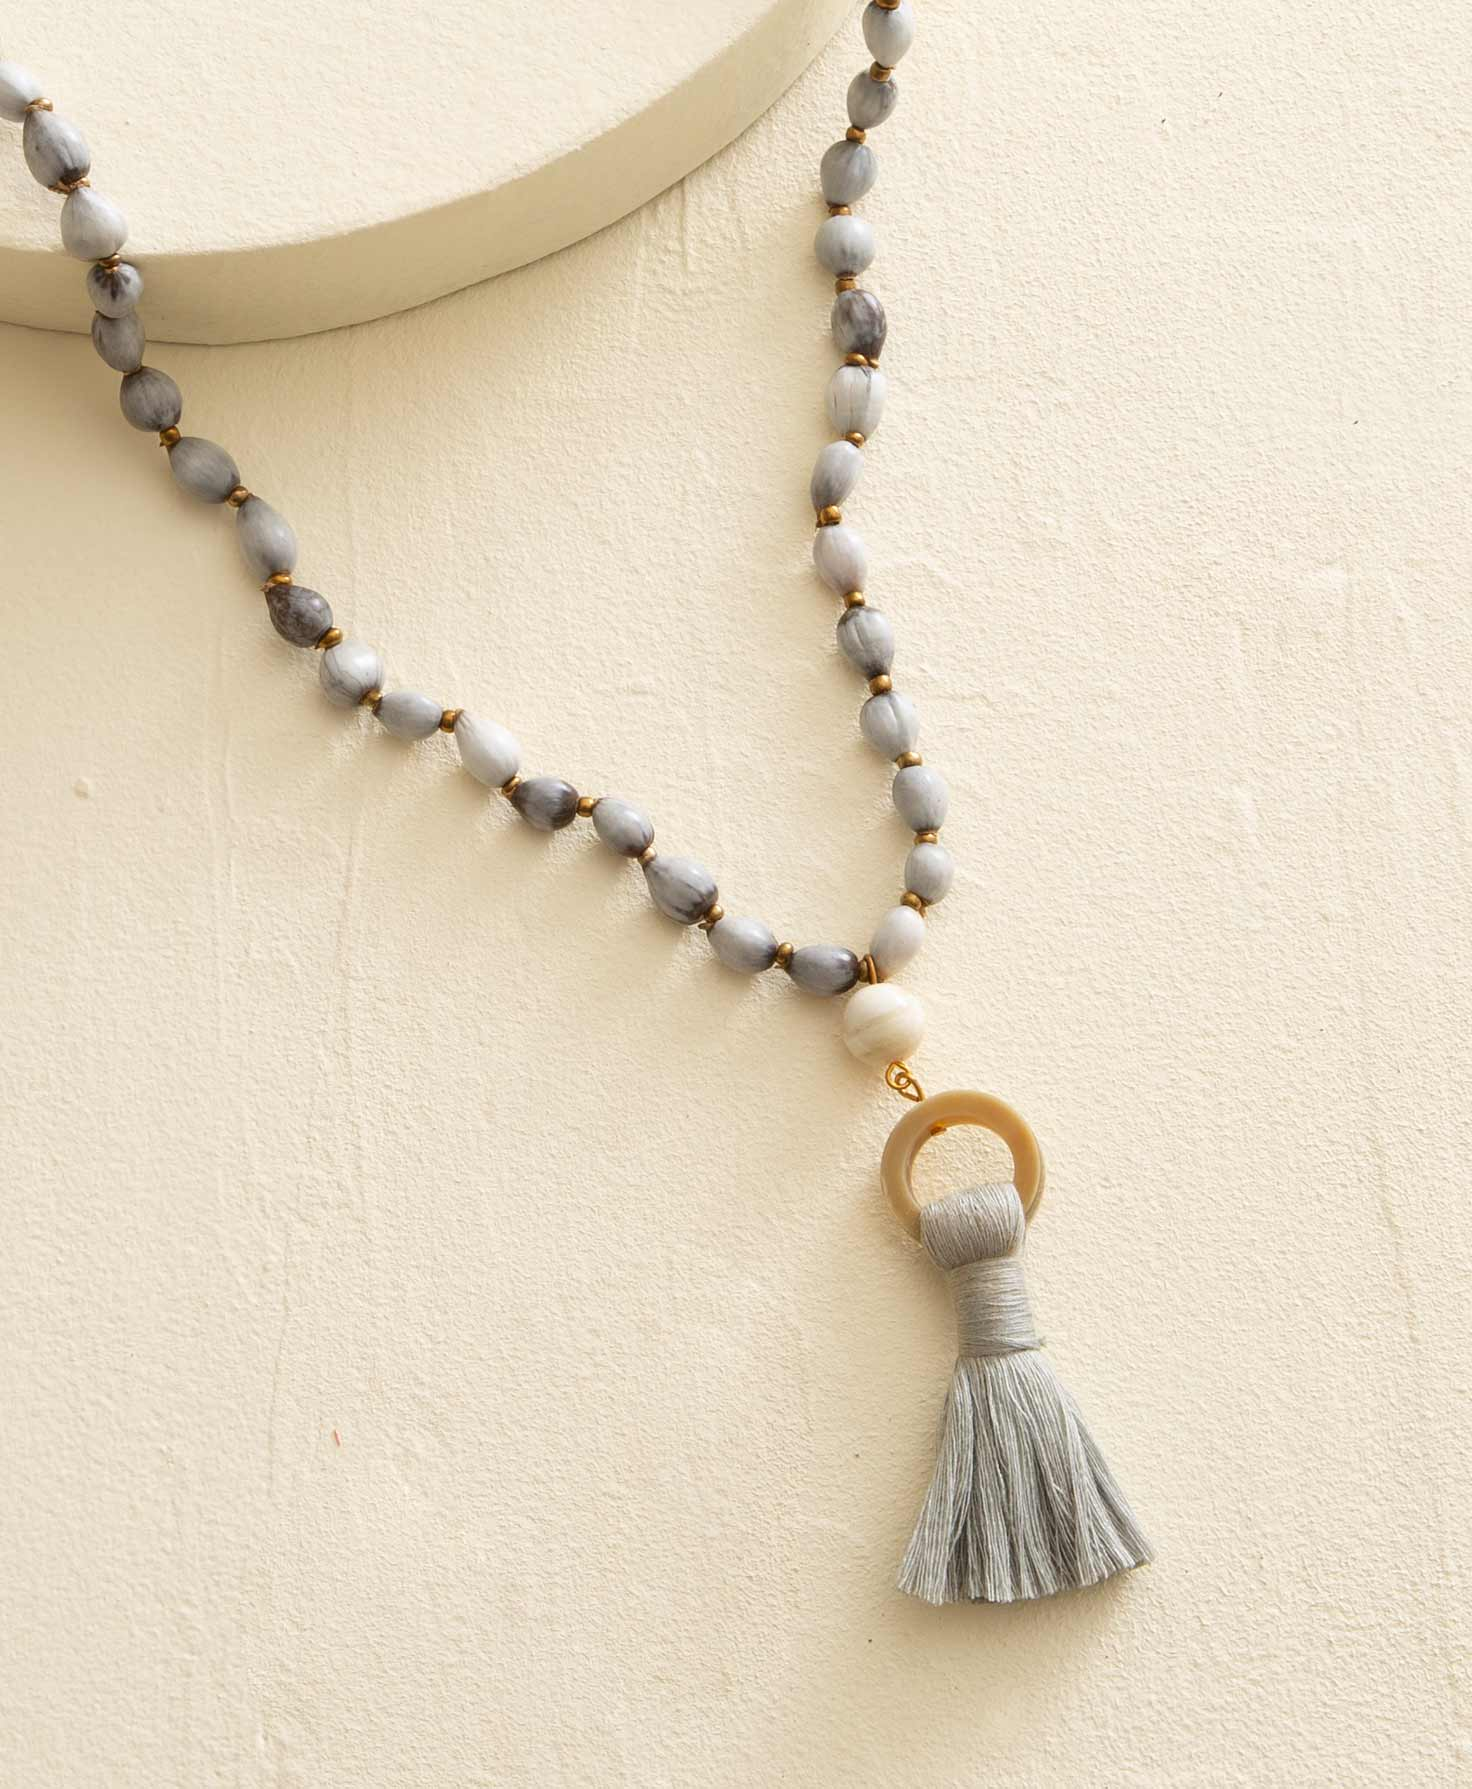 The Tempest Necklace lays draped on a cream background. It is a long rope necklace made primarily of natural embira seeds, which are smooth, light grey seeds with some dark grey striations. In between the embira seeds are small brass-colored beads. At the bottom of the necklace is a pendant composed of a caramel-colored horn hoop with a grey thread tassel hanging from the bottom.